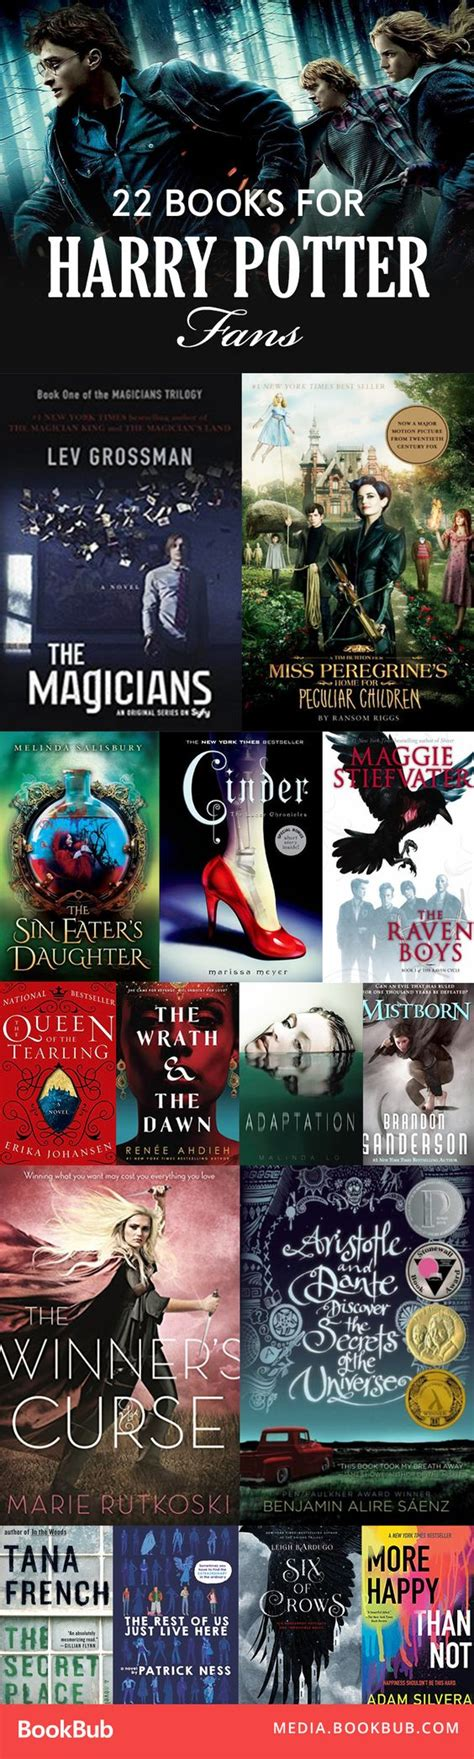 books for harry potter fans 22 books harry potter fans are reading today